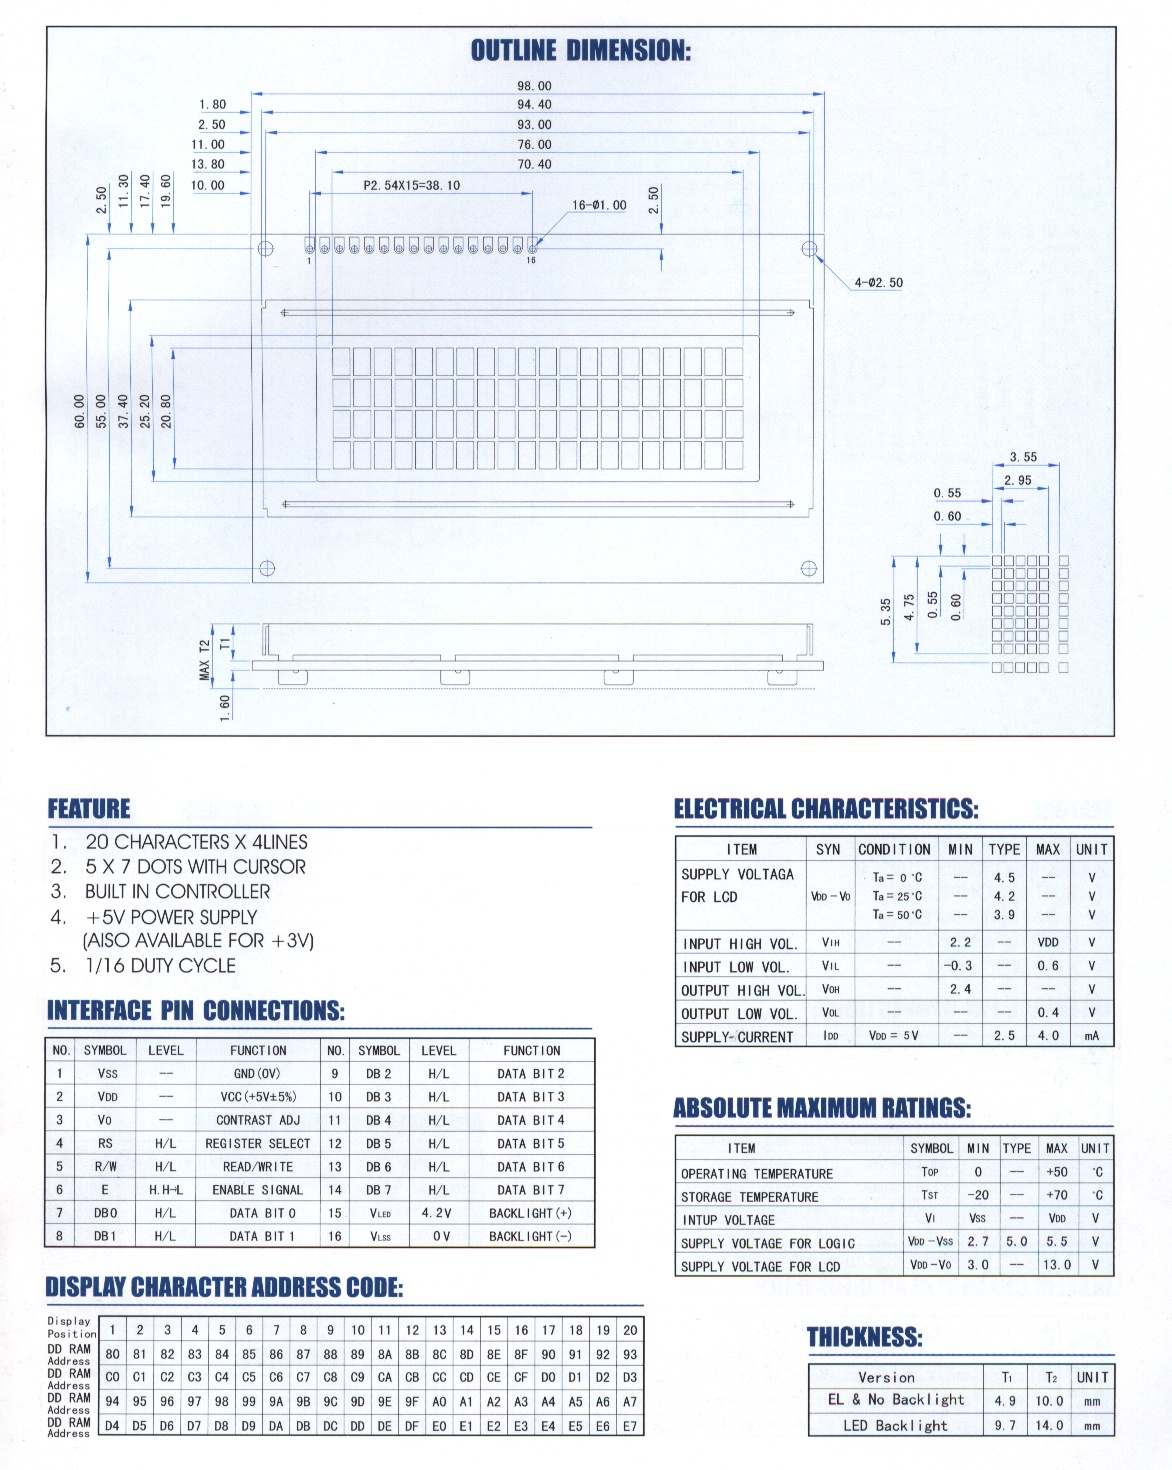 Pic Precision Thermometer Using The Ds1621 Circuit Diagram Of Electronic Led1